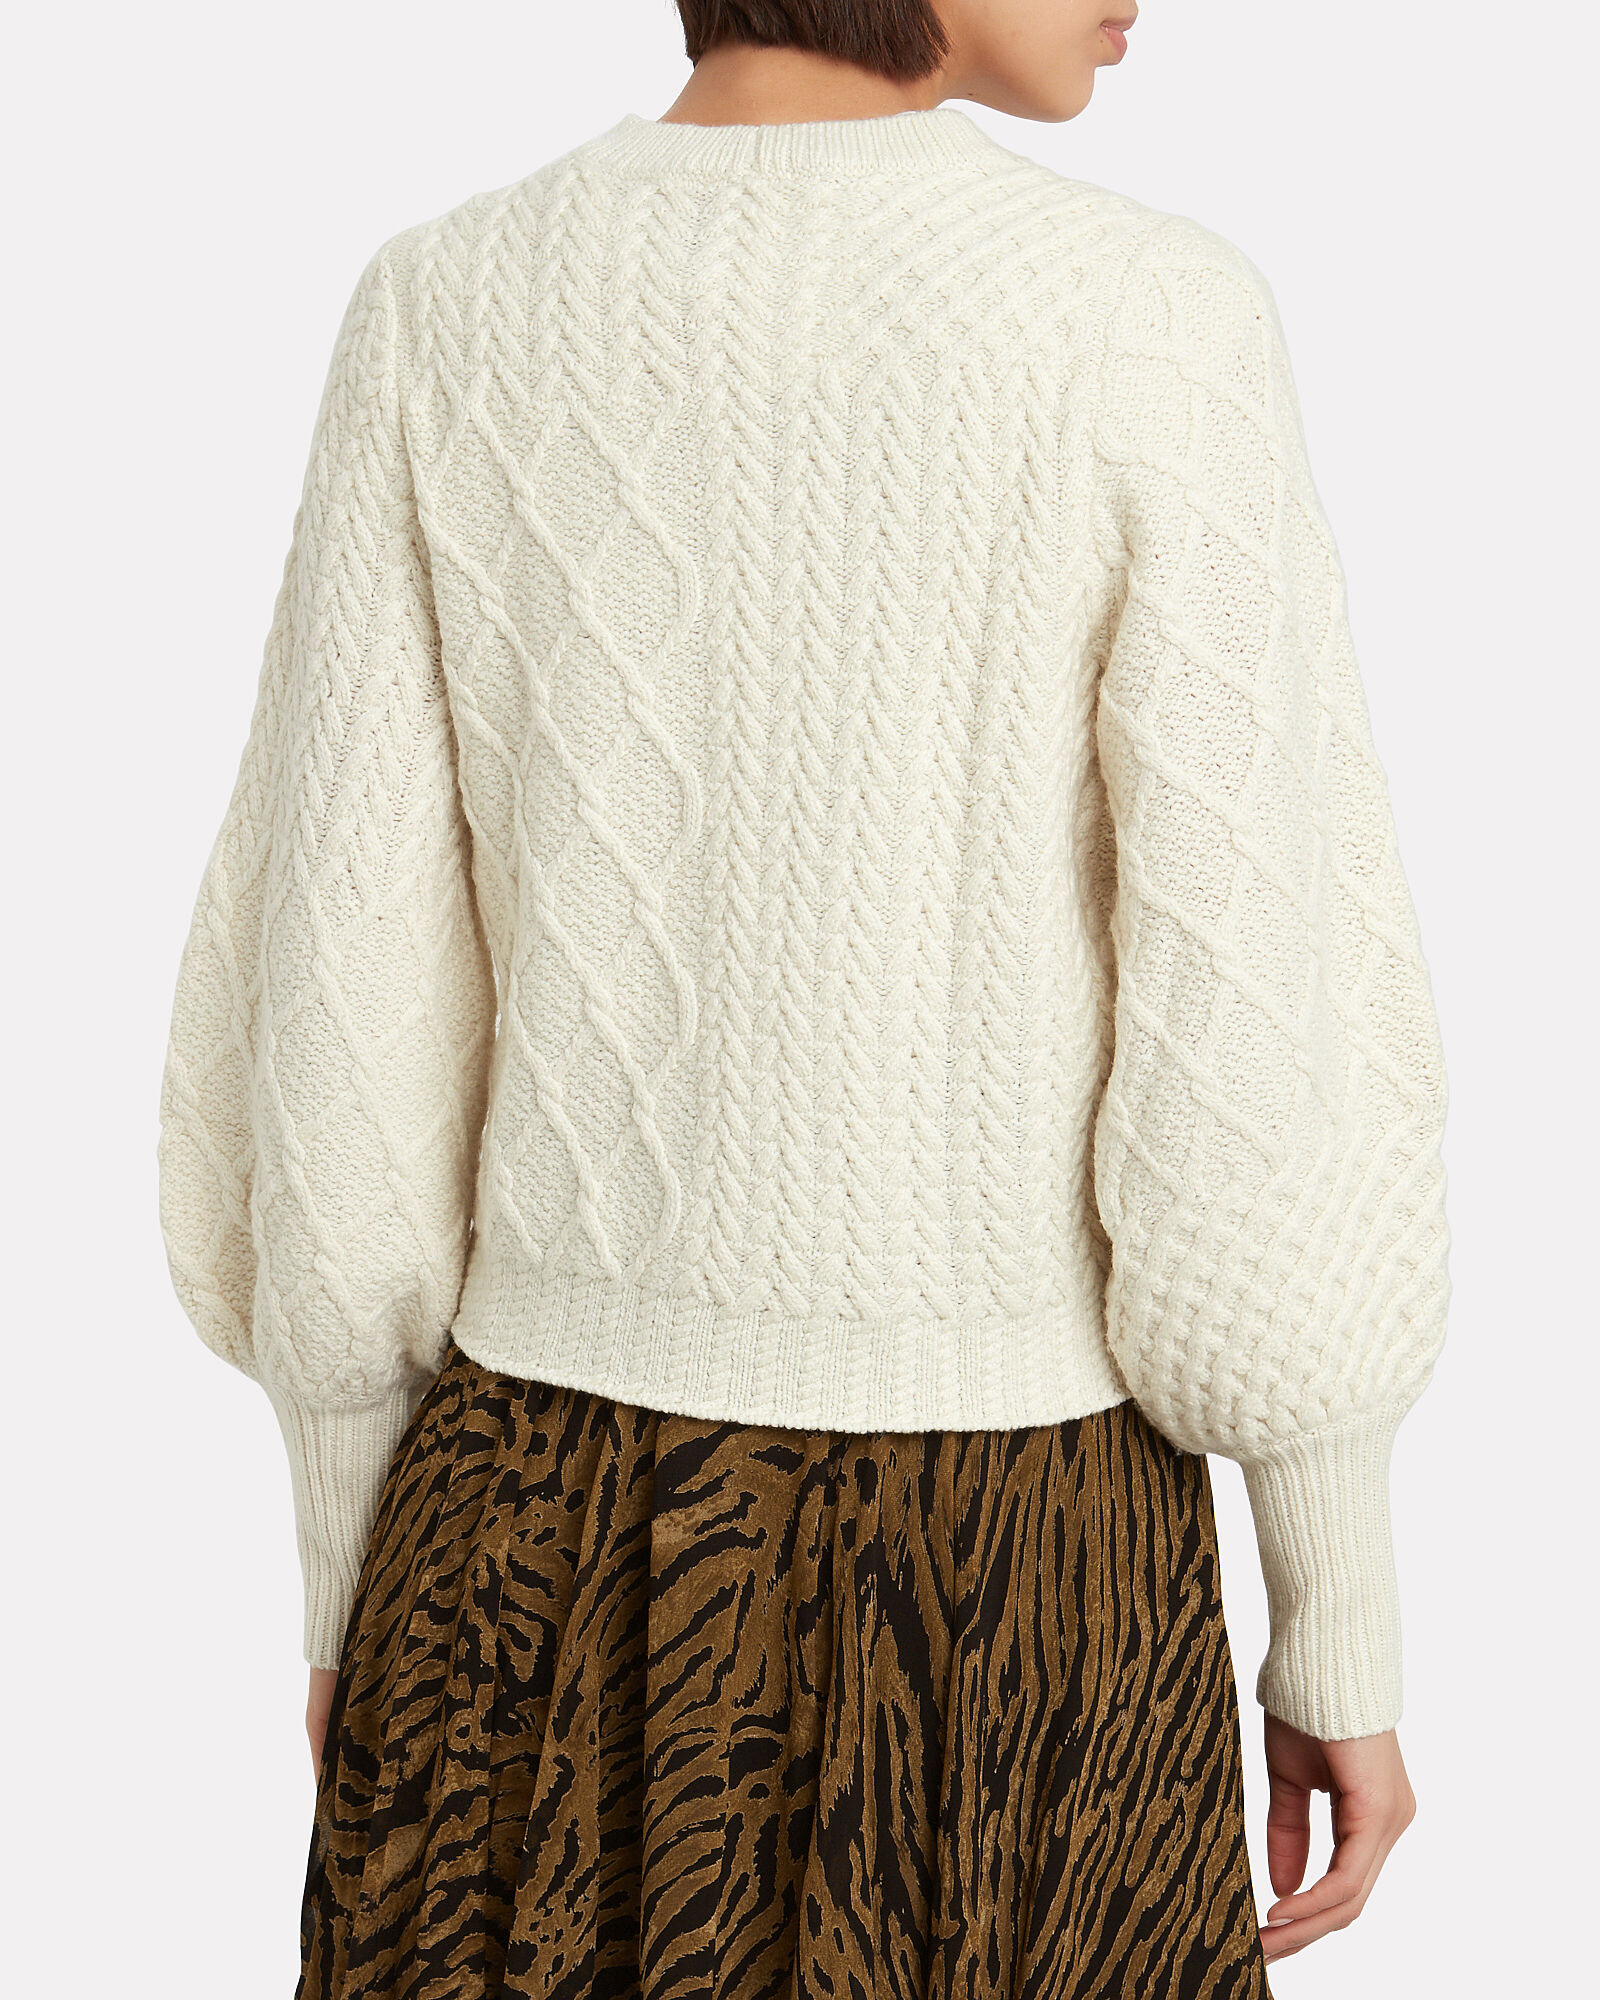 Patchwork Cable Knit Wool Sweater, WHITE, hi-res